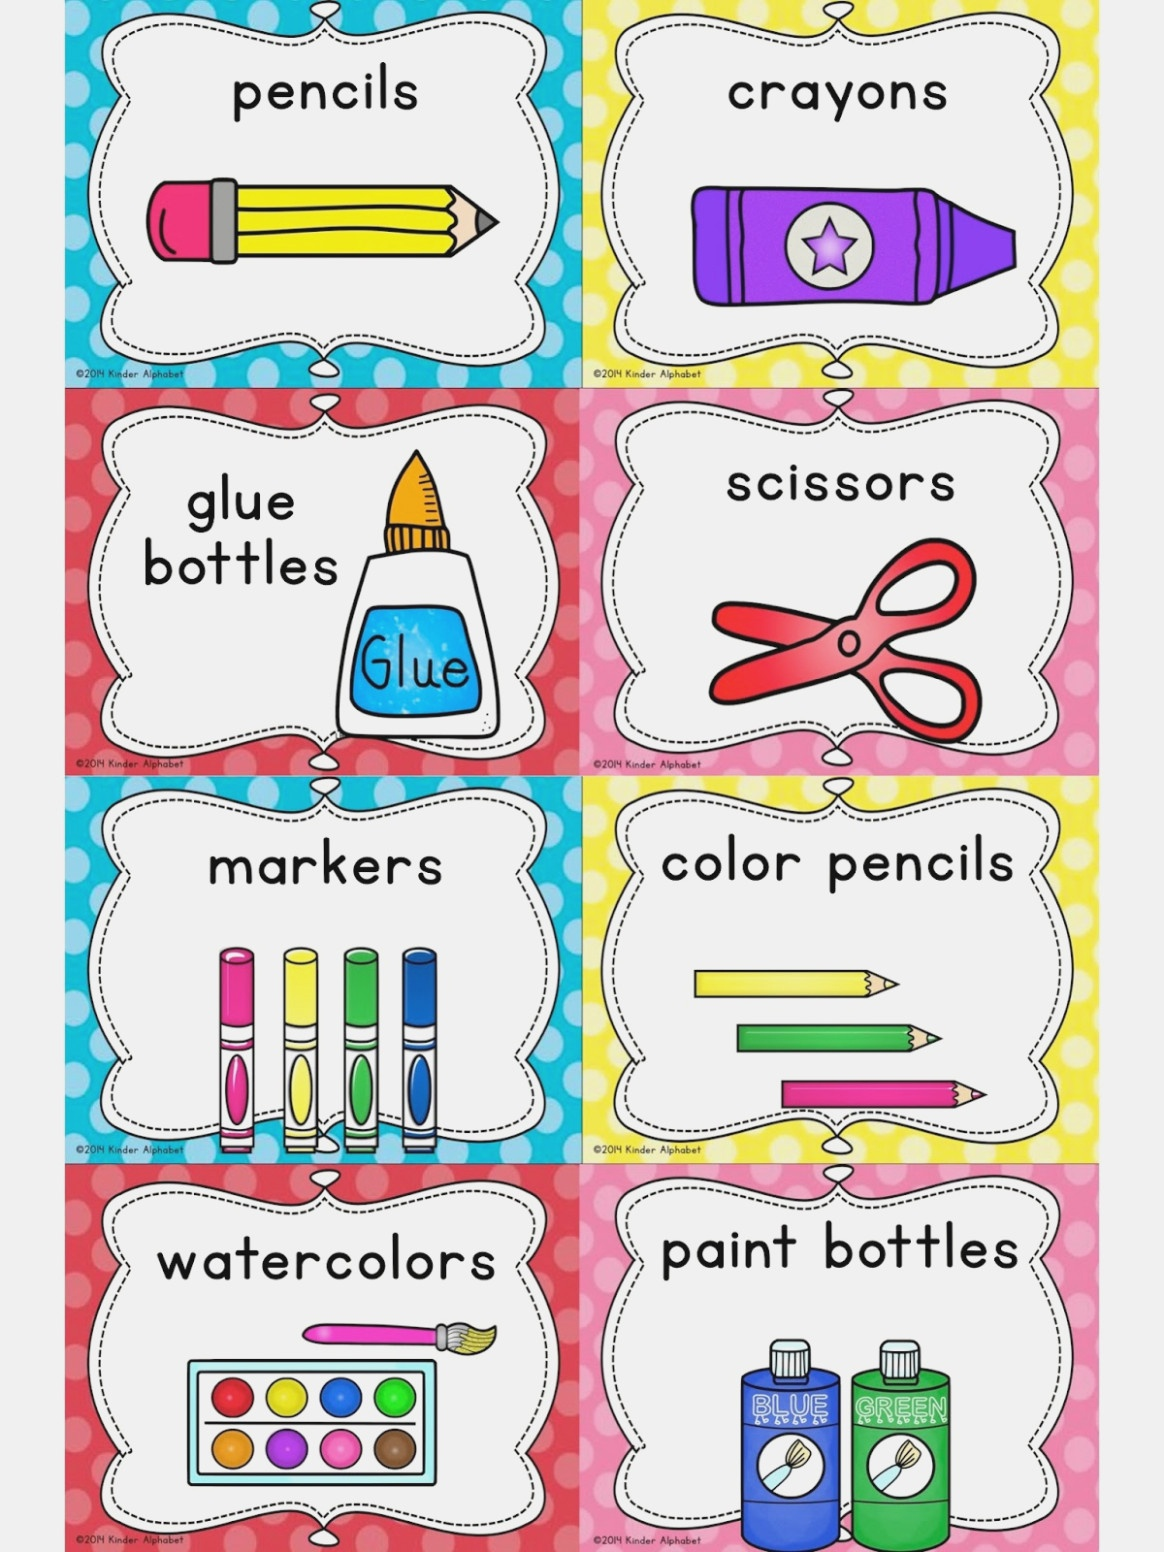 Free Printable Classroom Labels For Preschoolers Free Printable - Free Printable Classroom Labels For Preschoolers